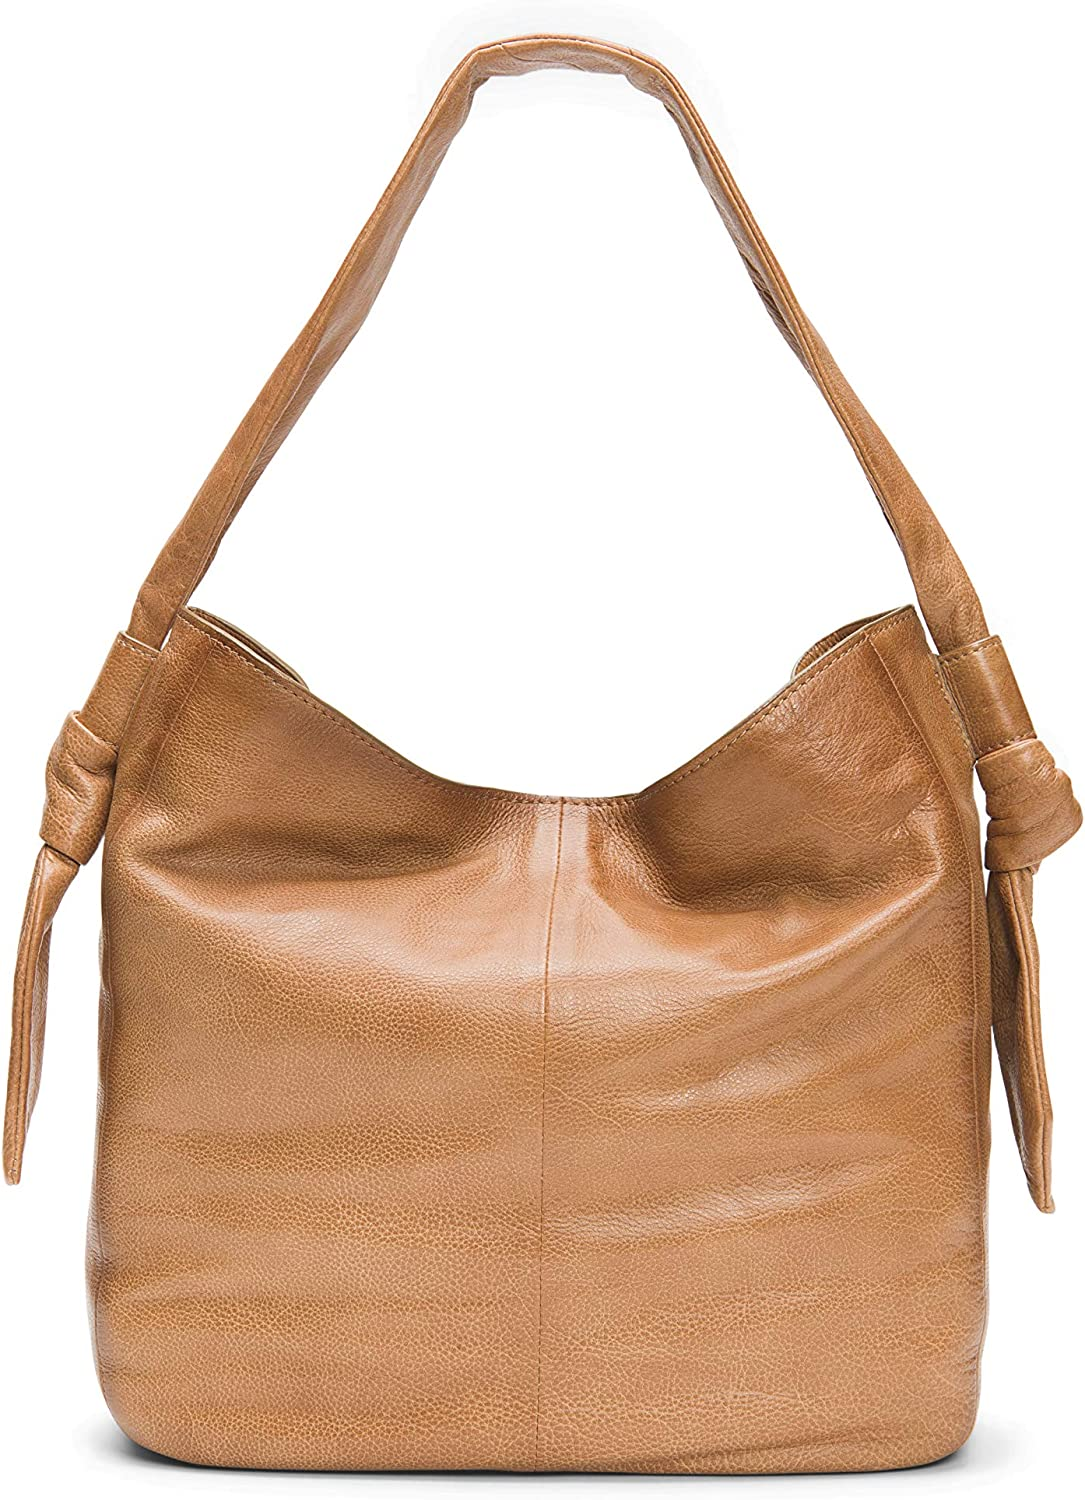 Frye Nora Knotted Hobo